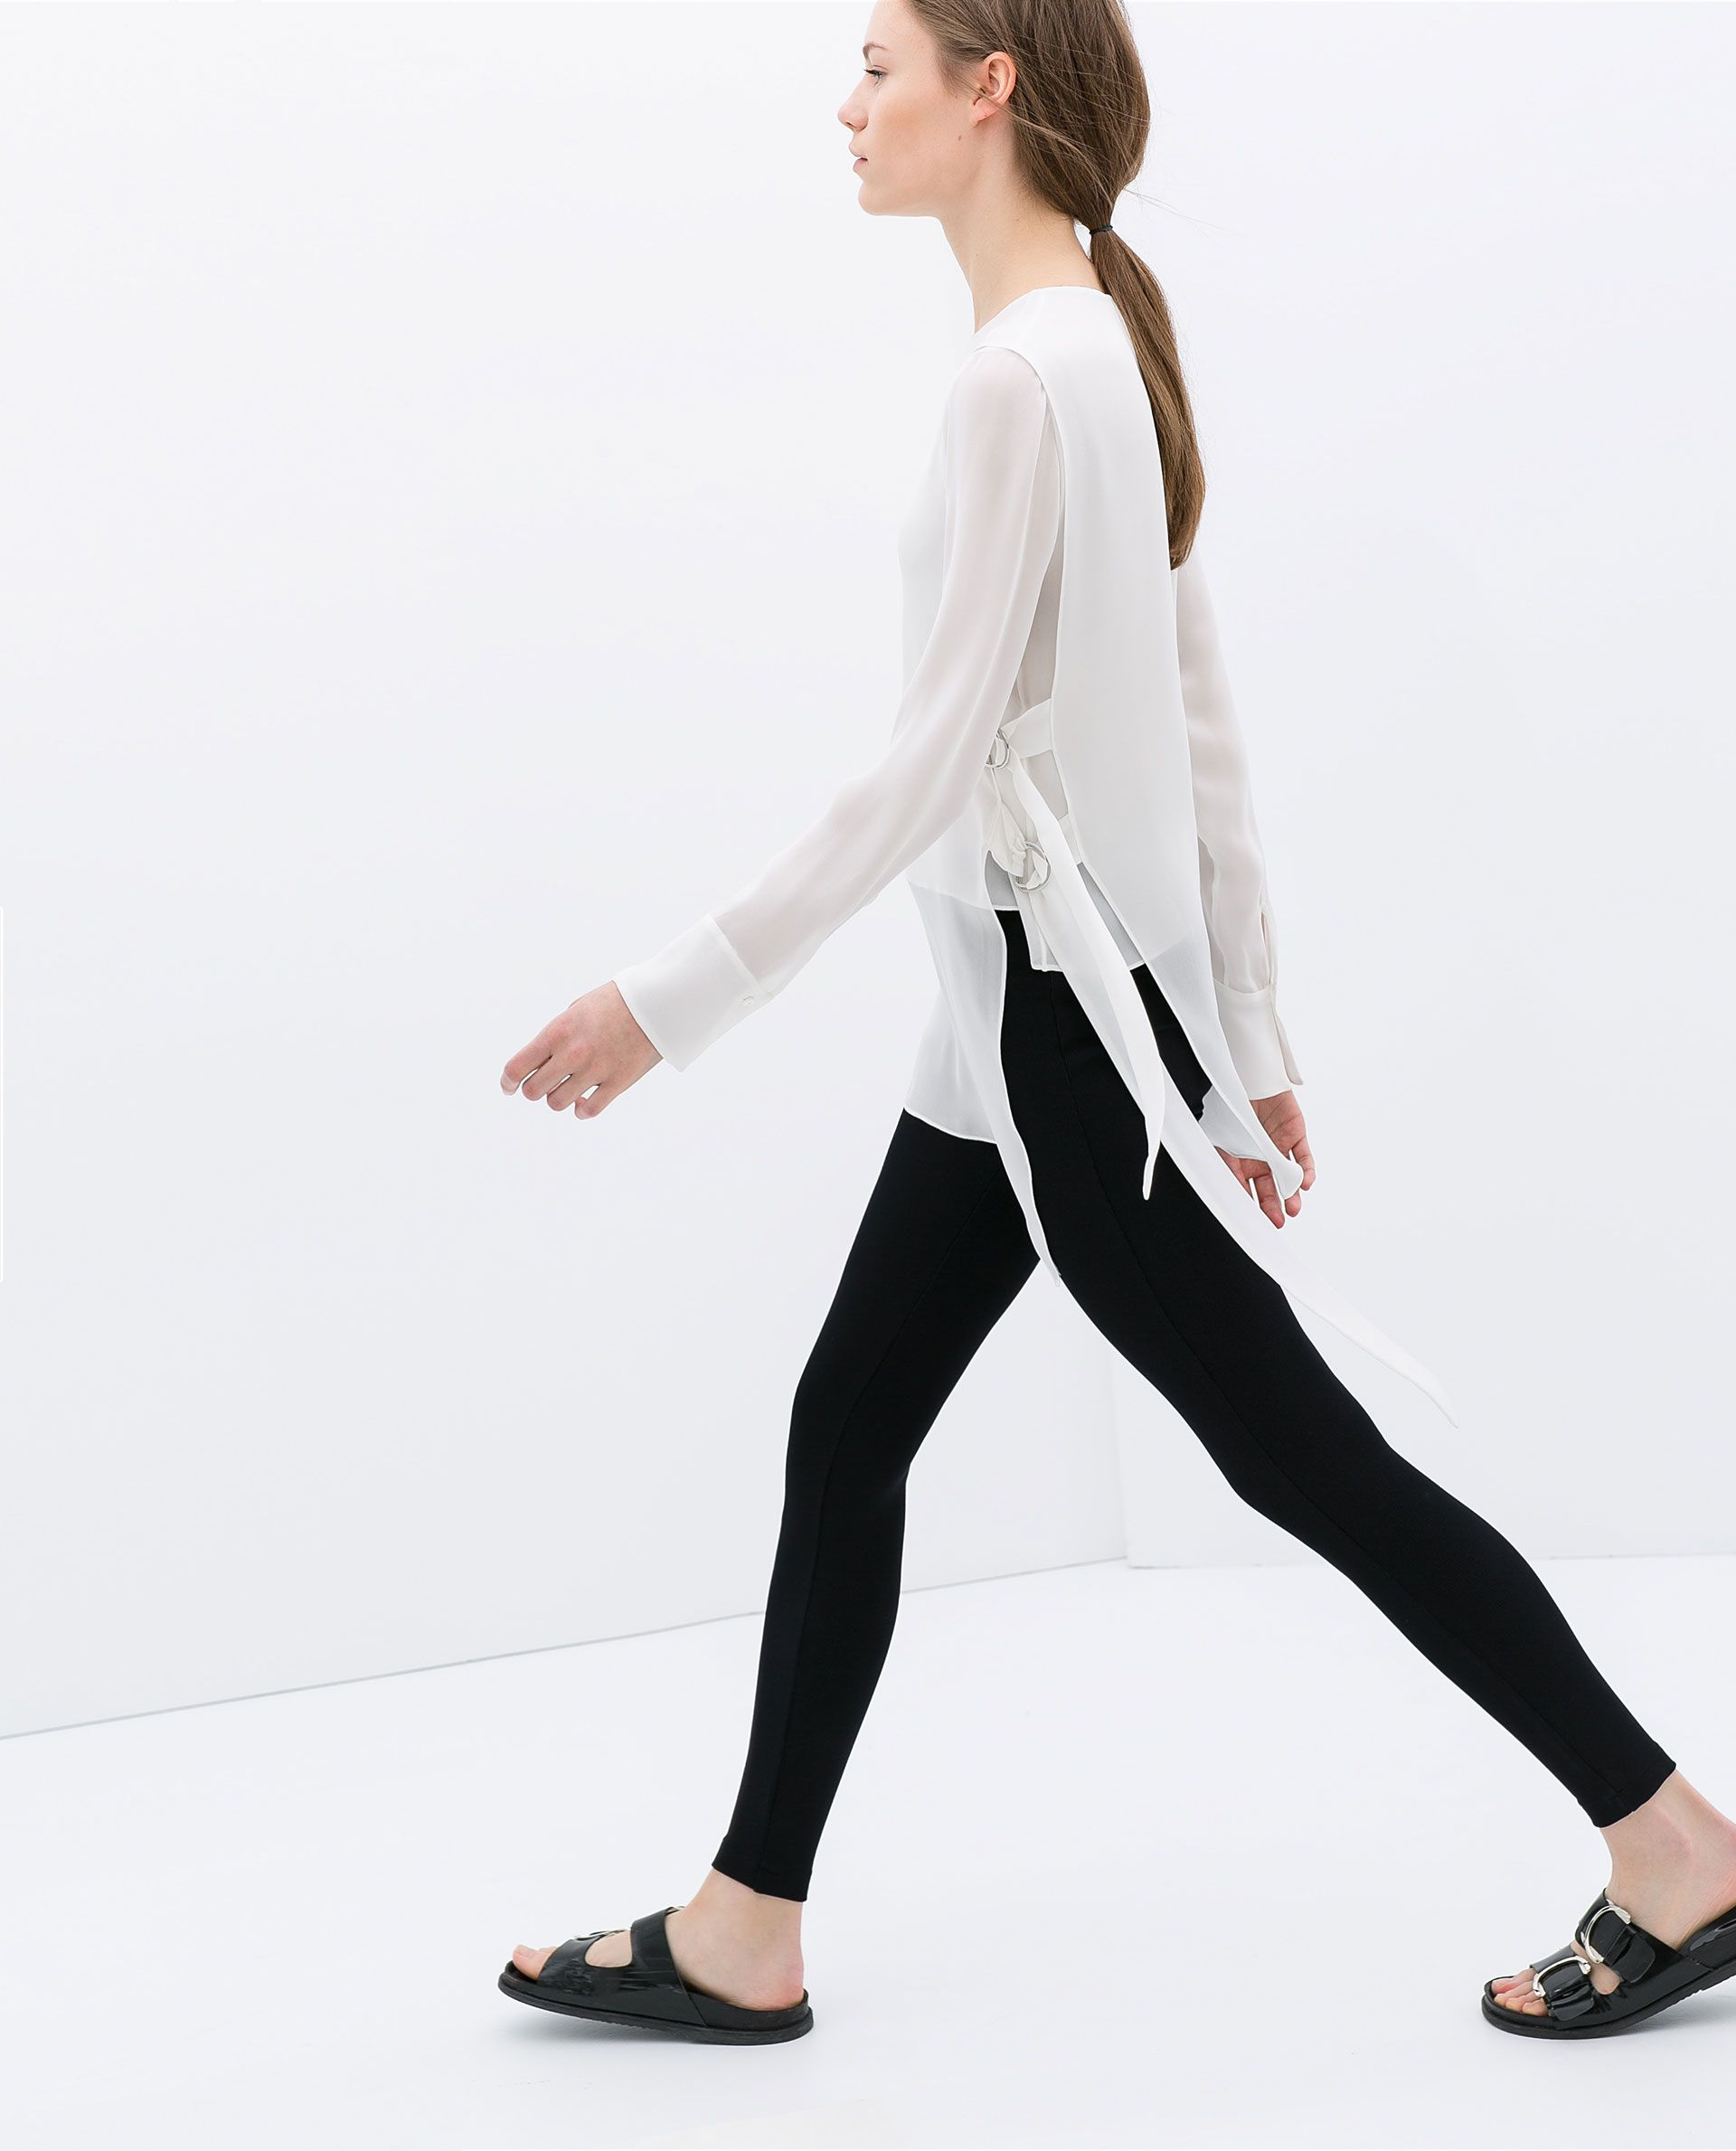 ea2a4c4f88 STUDIO SHIRT WITH SIDE BUCKLES - Woman - NEW THIS WEEK   ZARA ...